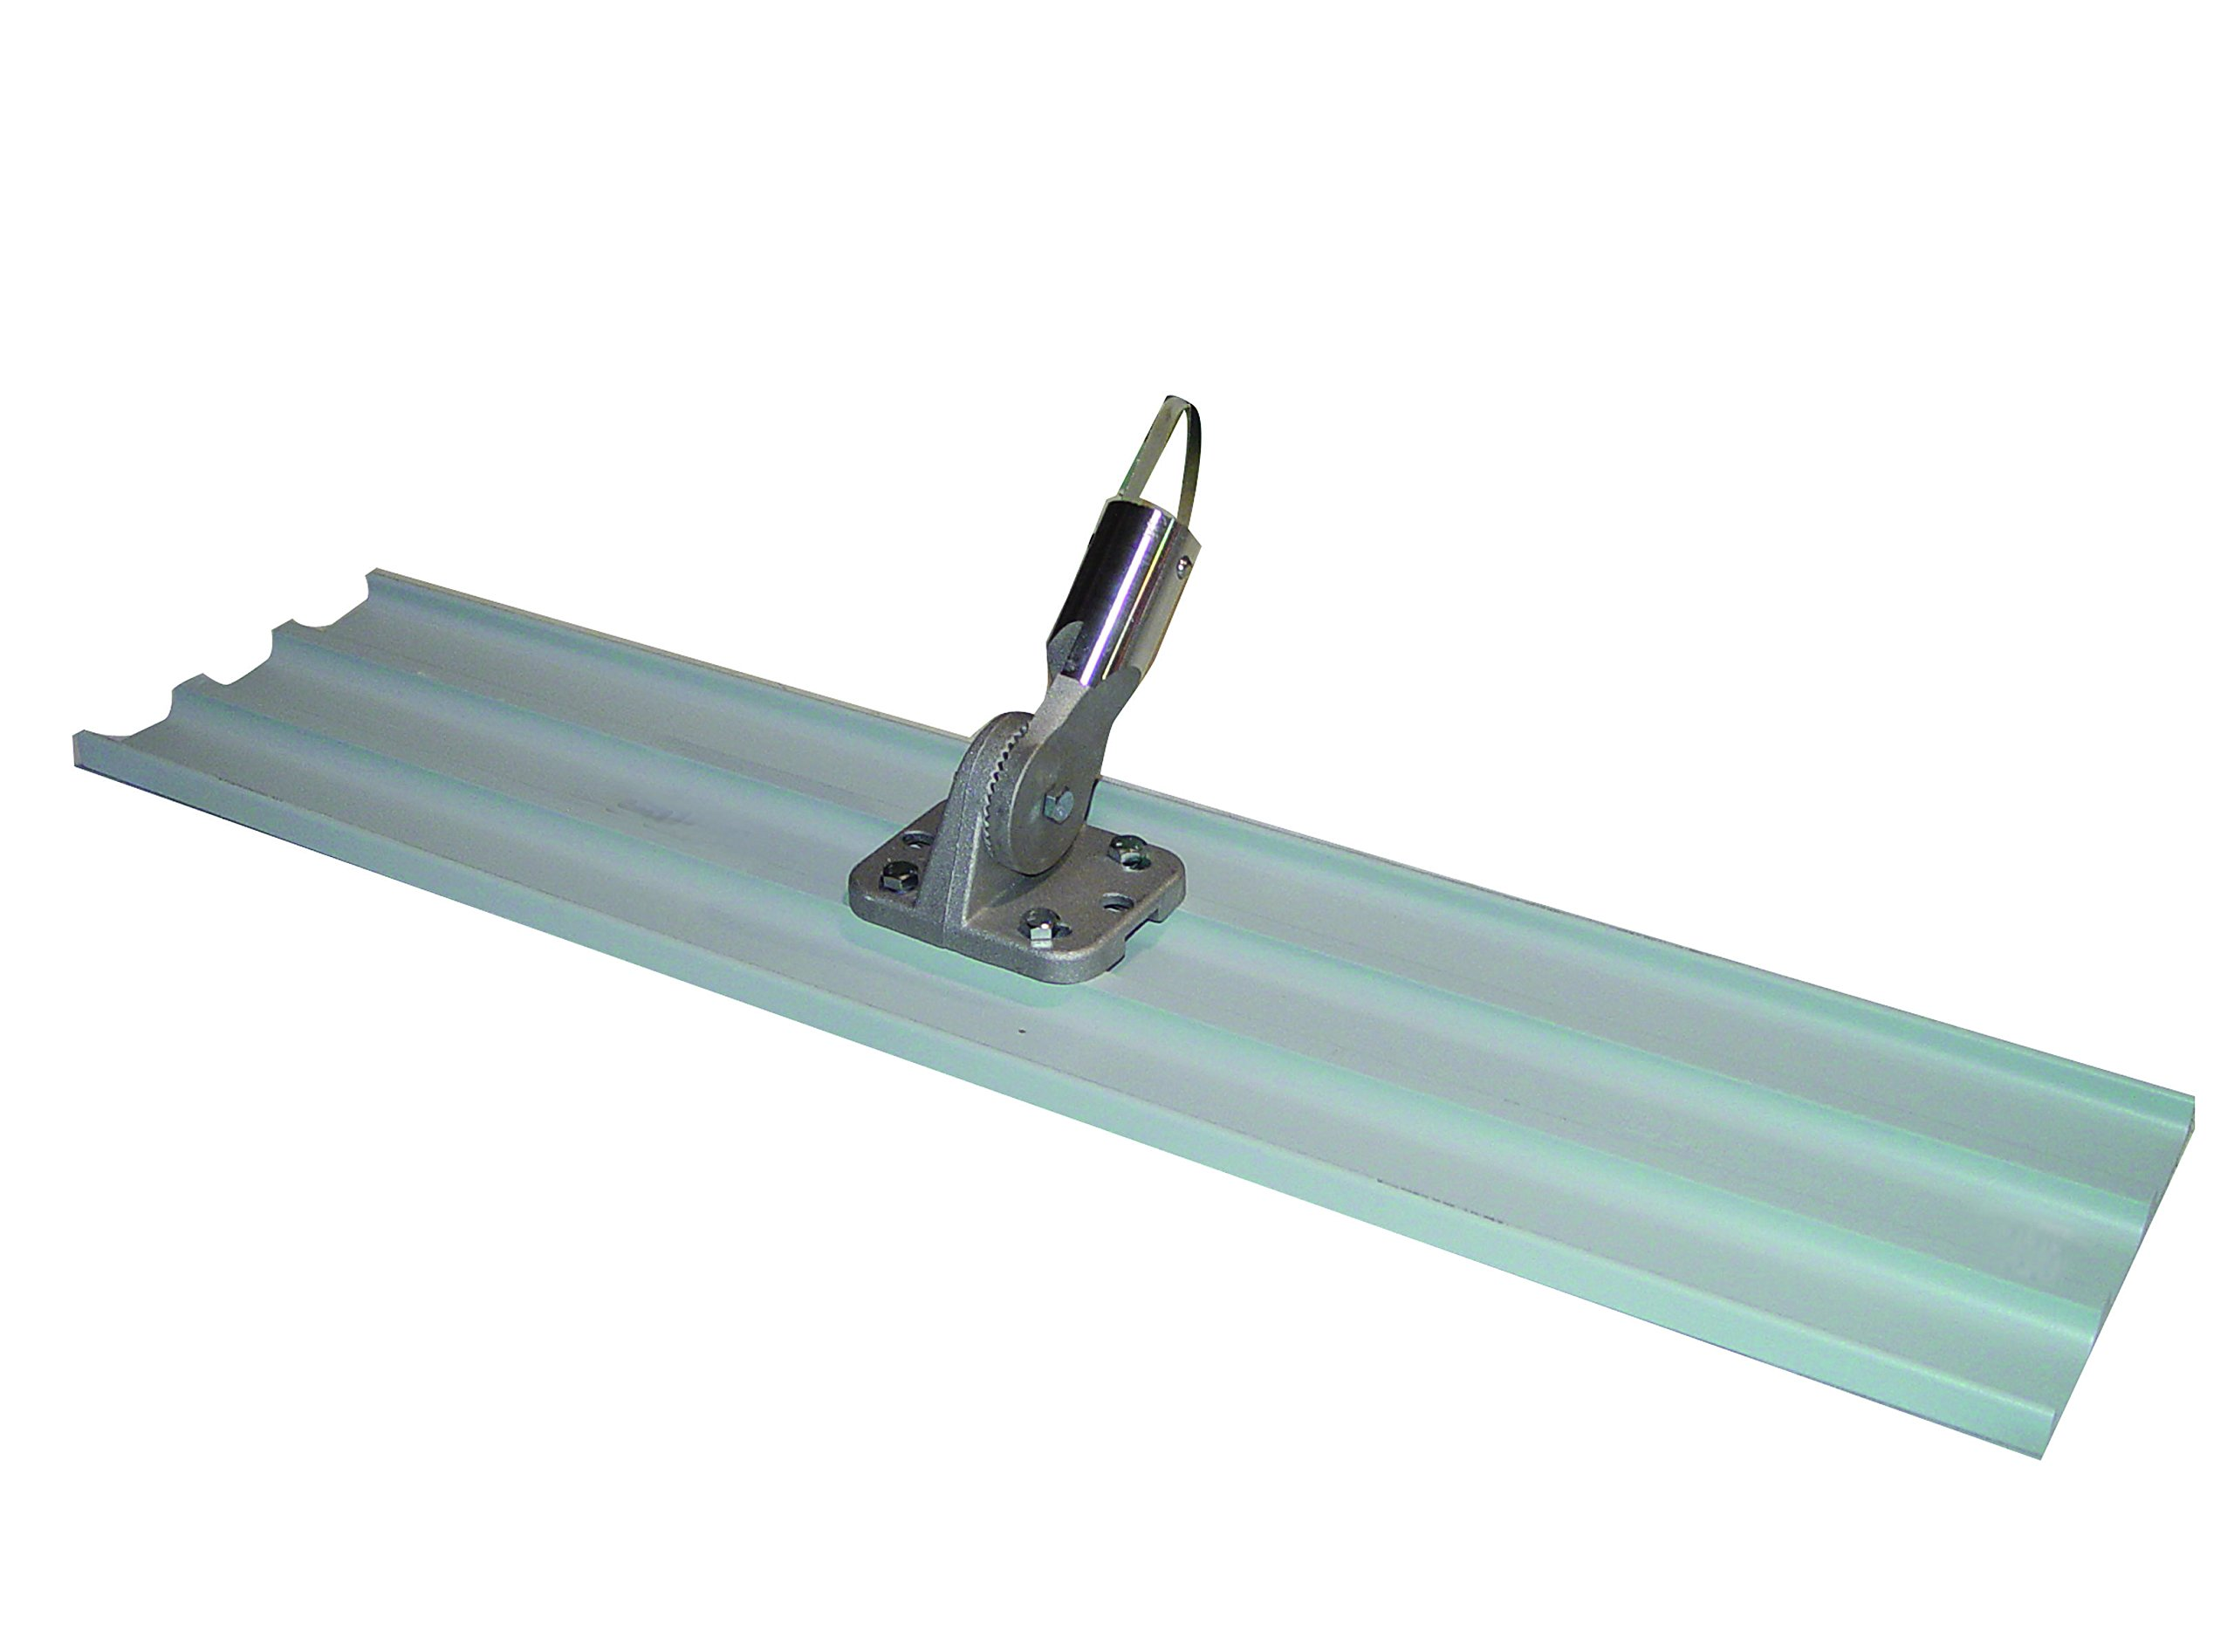 Bon 82-446 45-Inch by 8-Inch Square End Magnesium Concrete Bull Float with Universal Button Hole Bracket